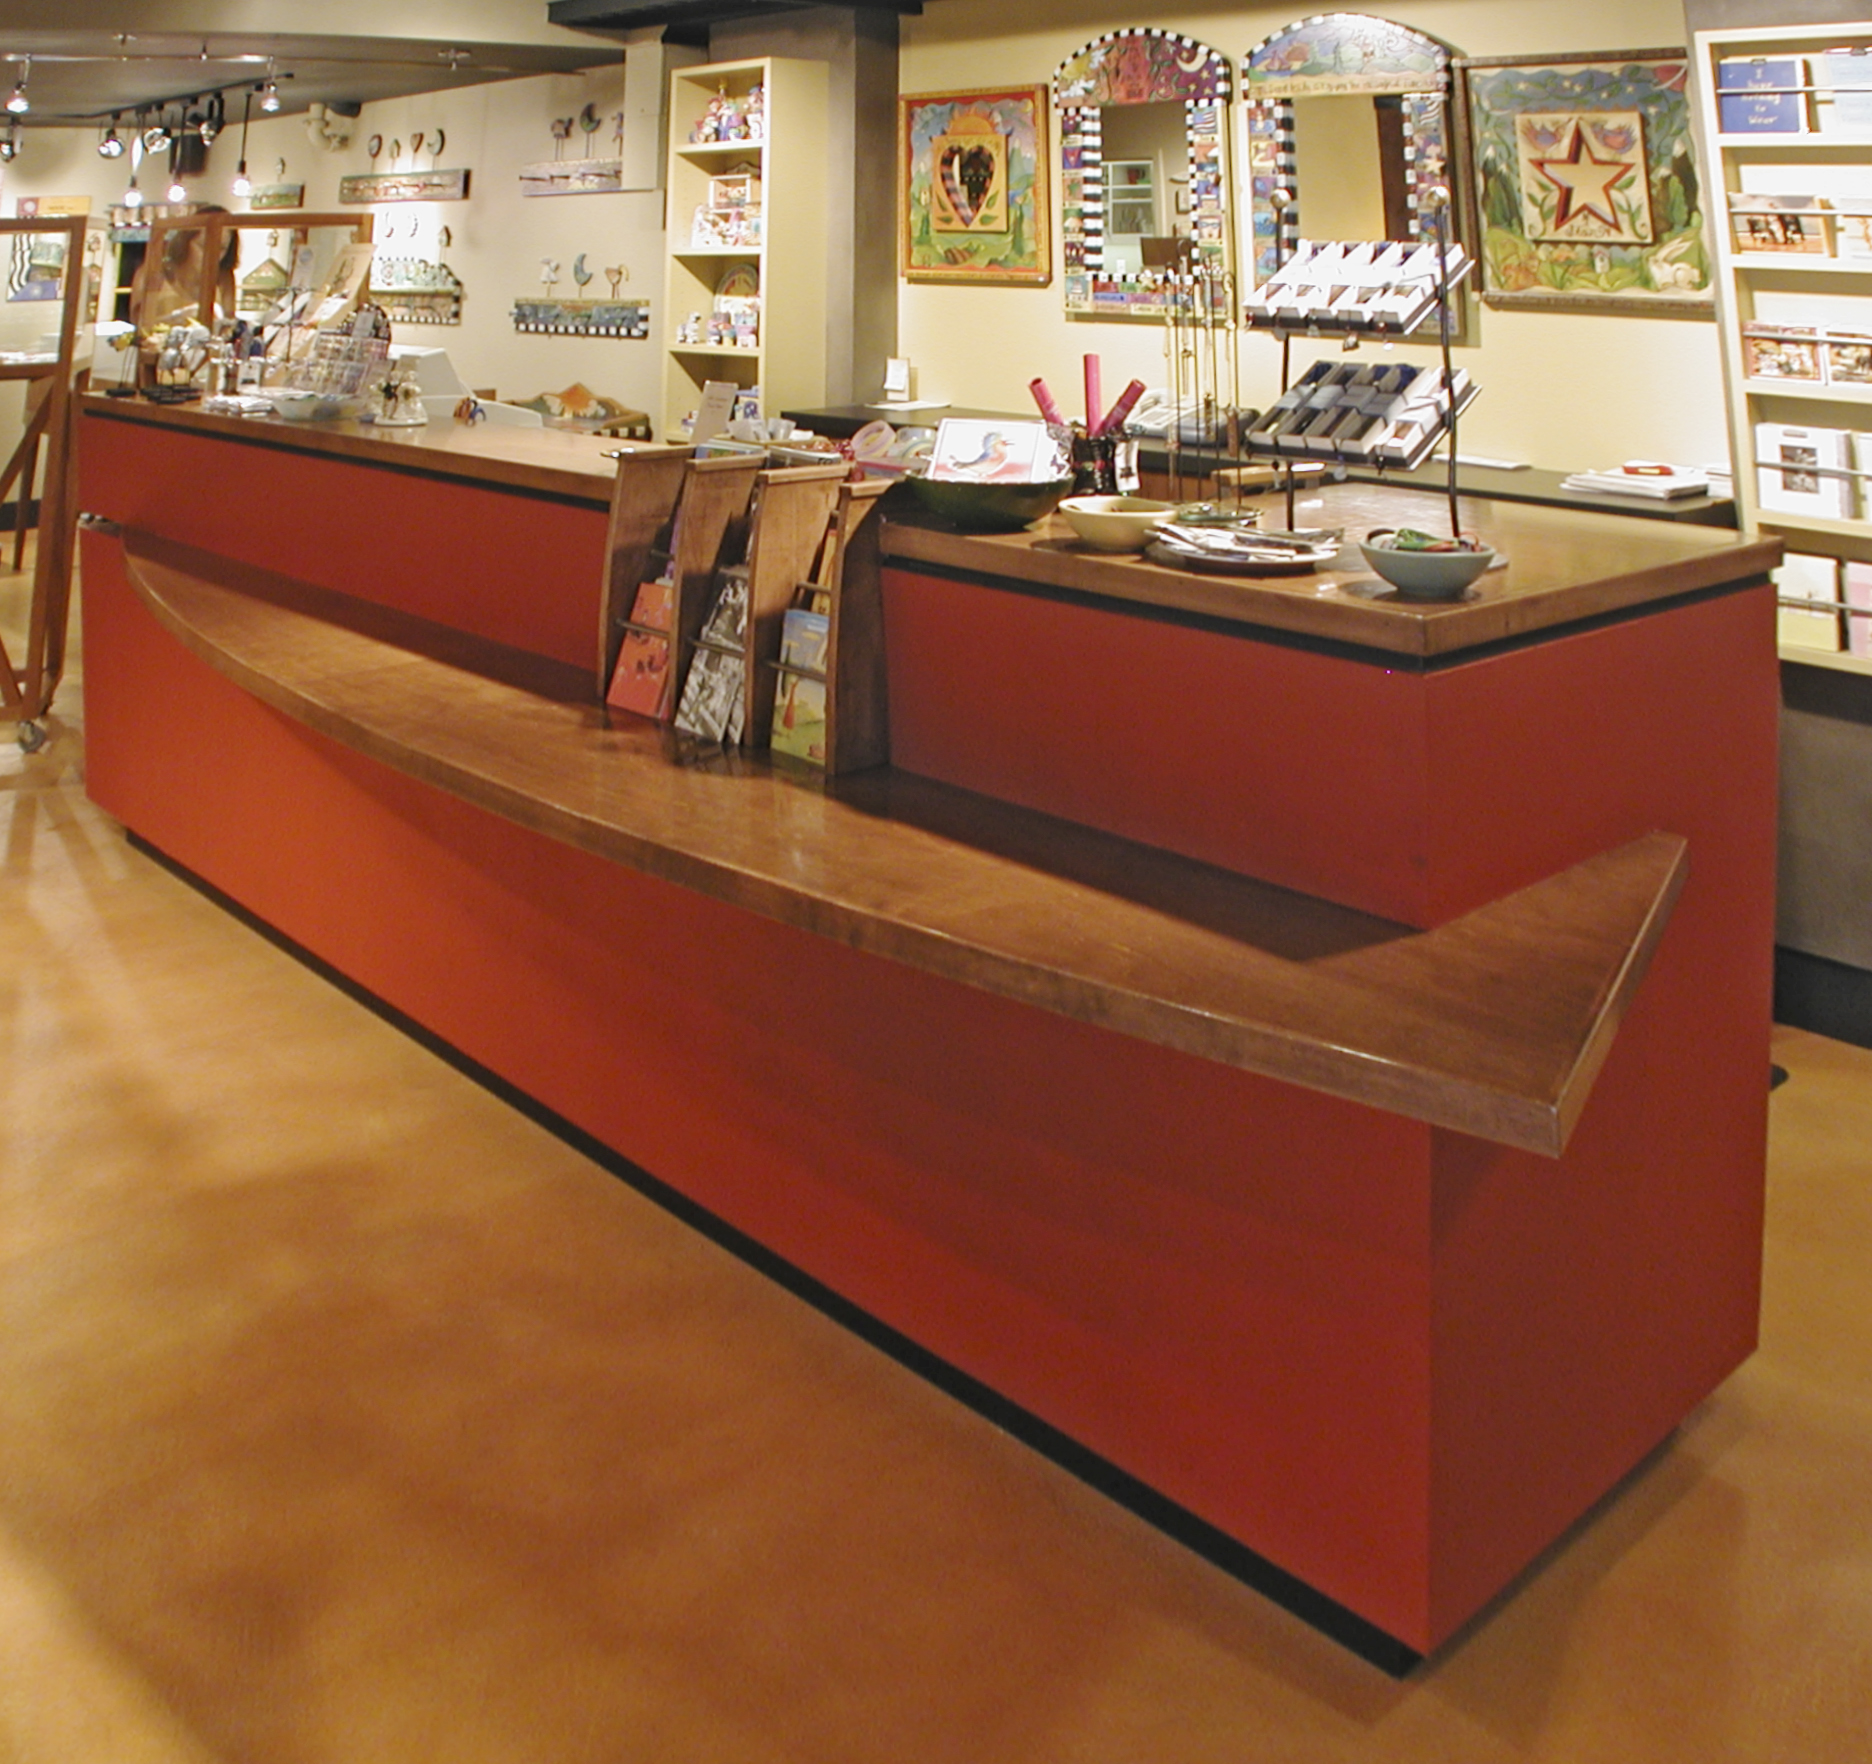 Gridwall Point of Purchase Display with poplar wood frame and sign. Includes Casters